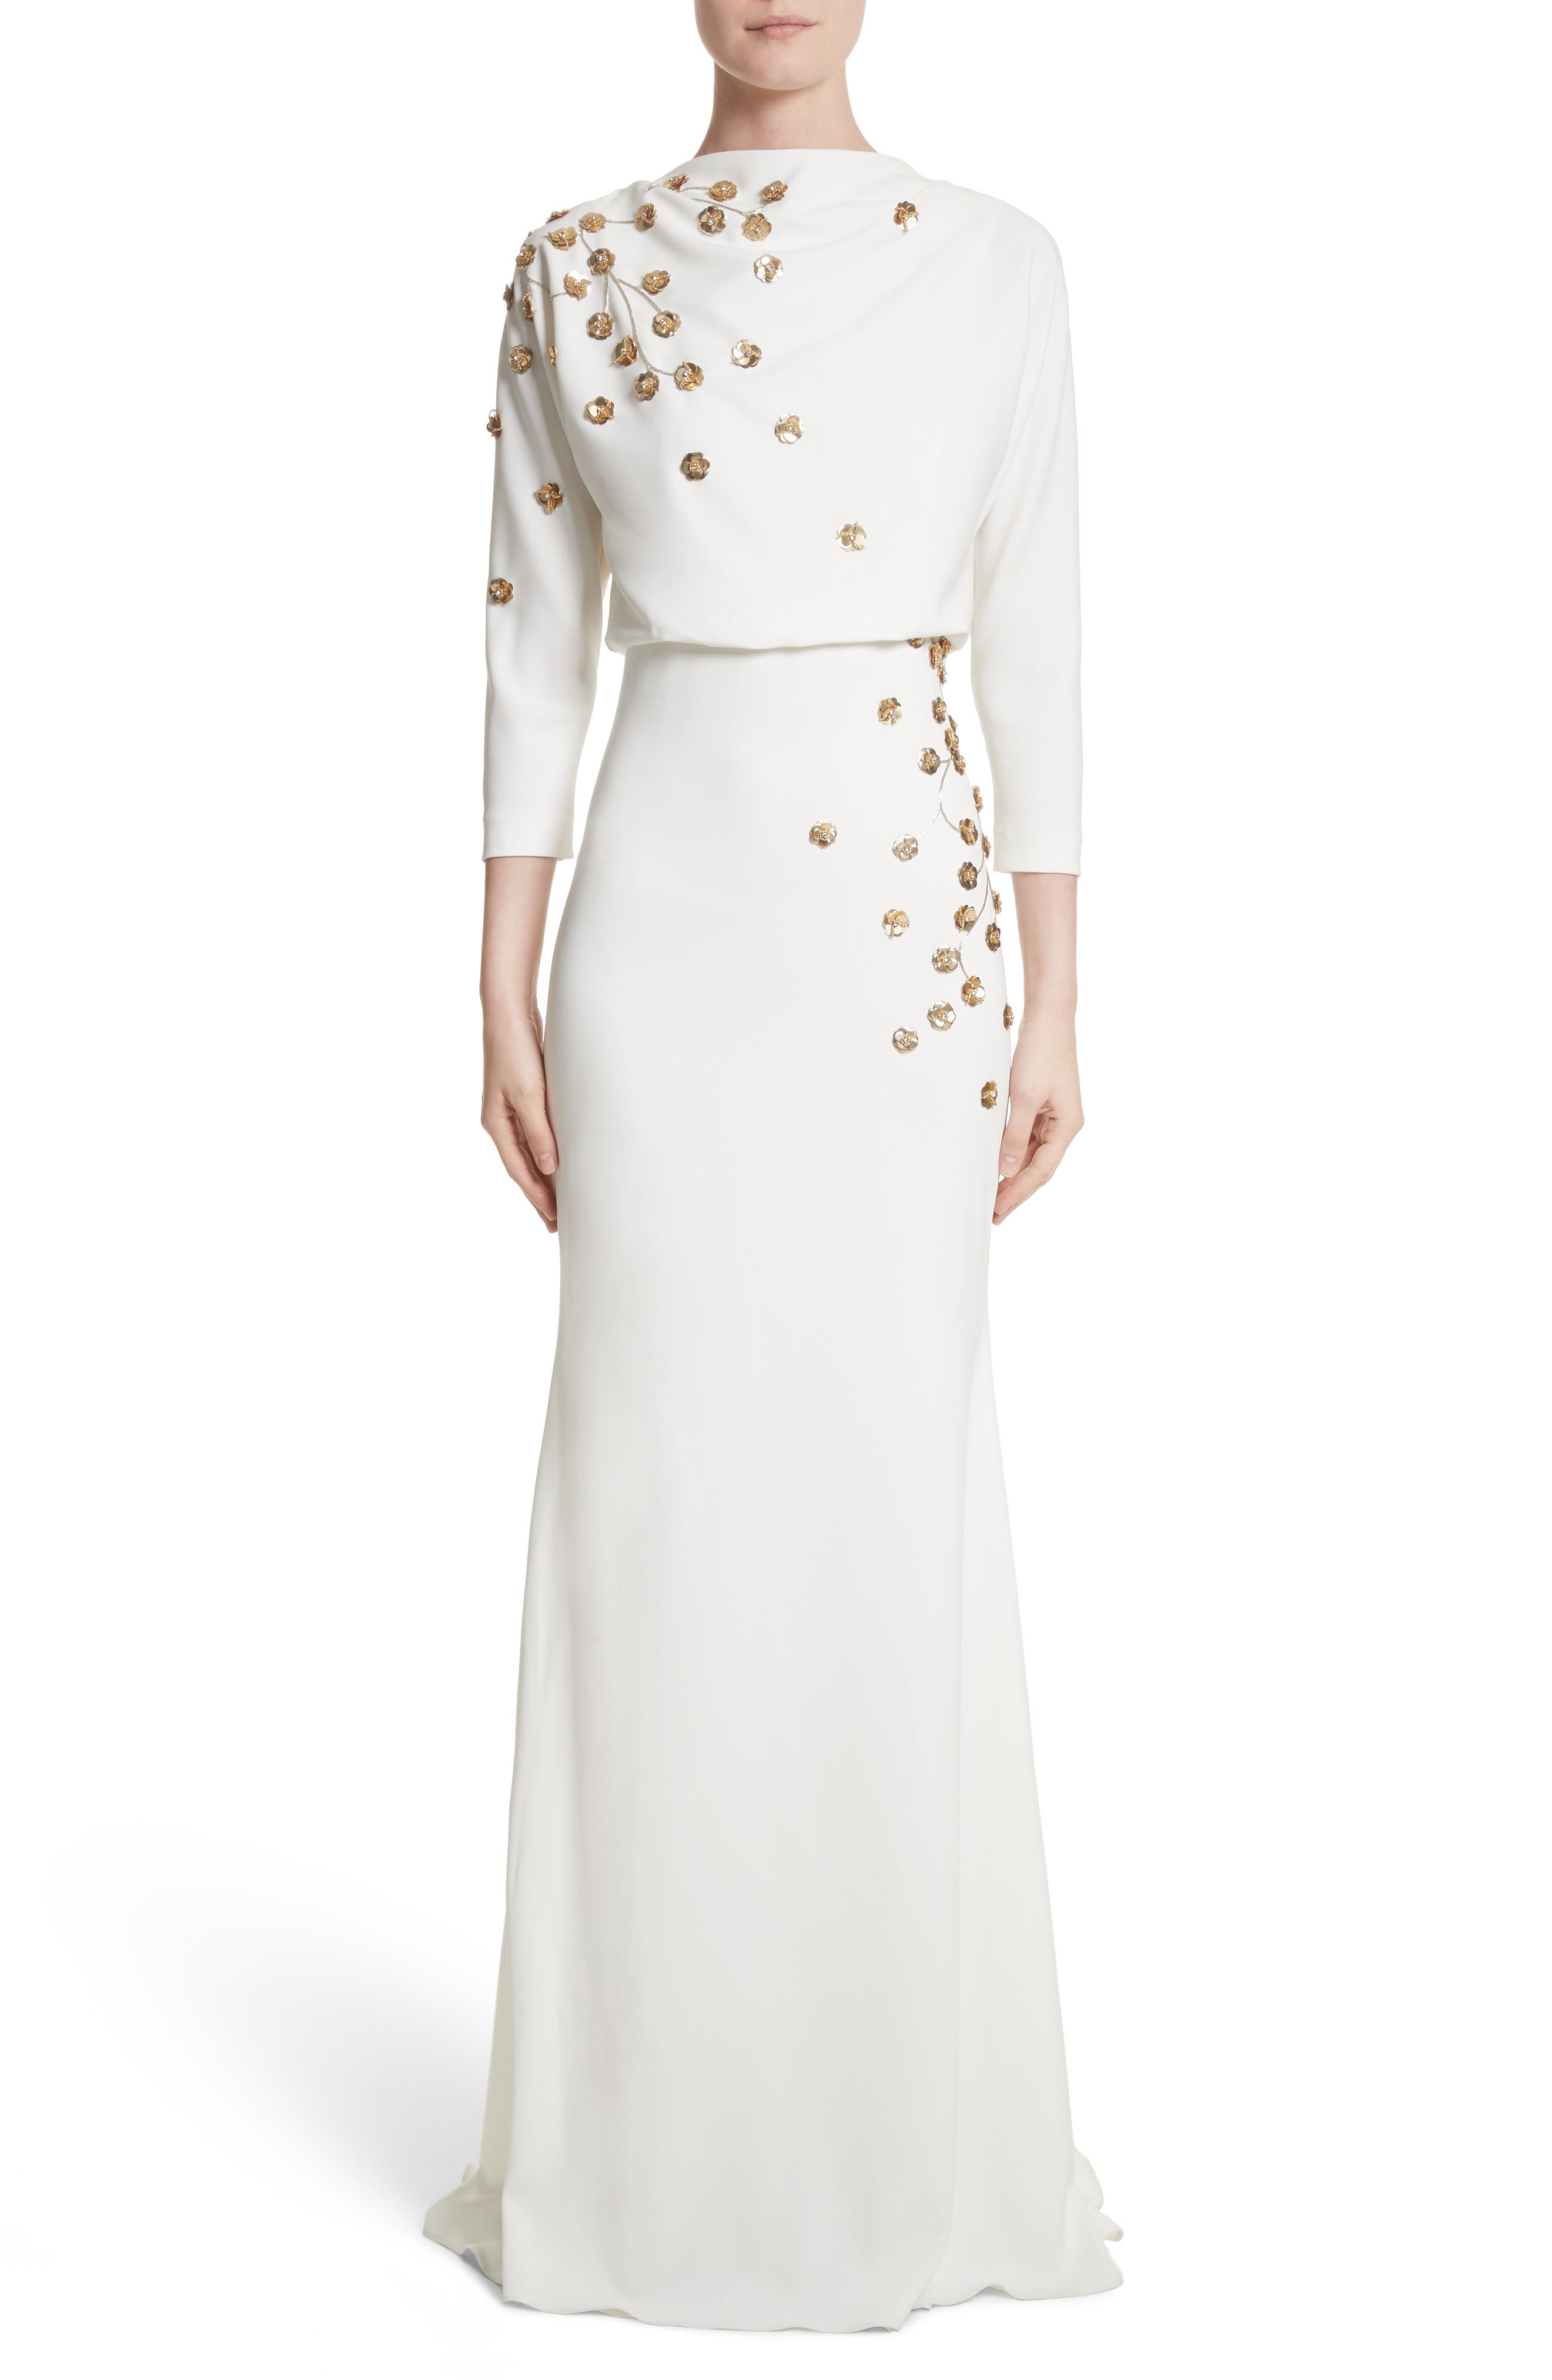 Badgley Mischka Couture Floral Embellished Crepe Gown,                             Main thumbnail 1, color,                             Light Ivory